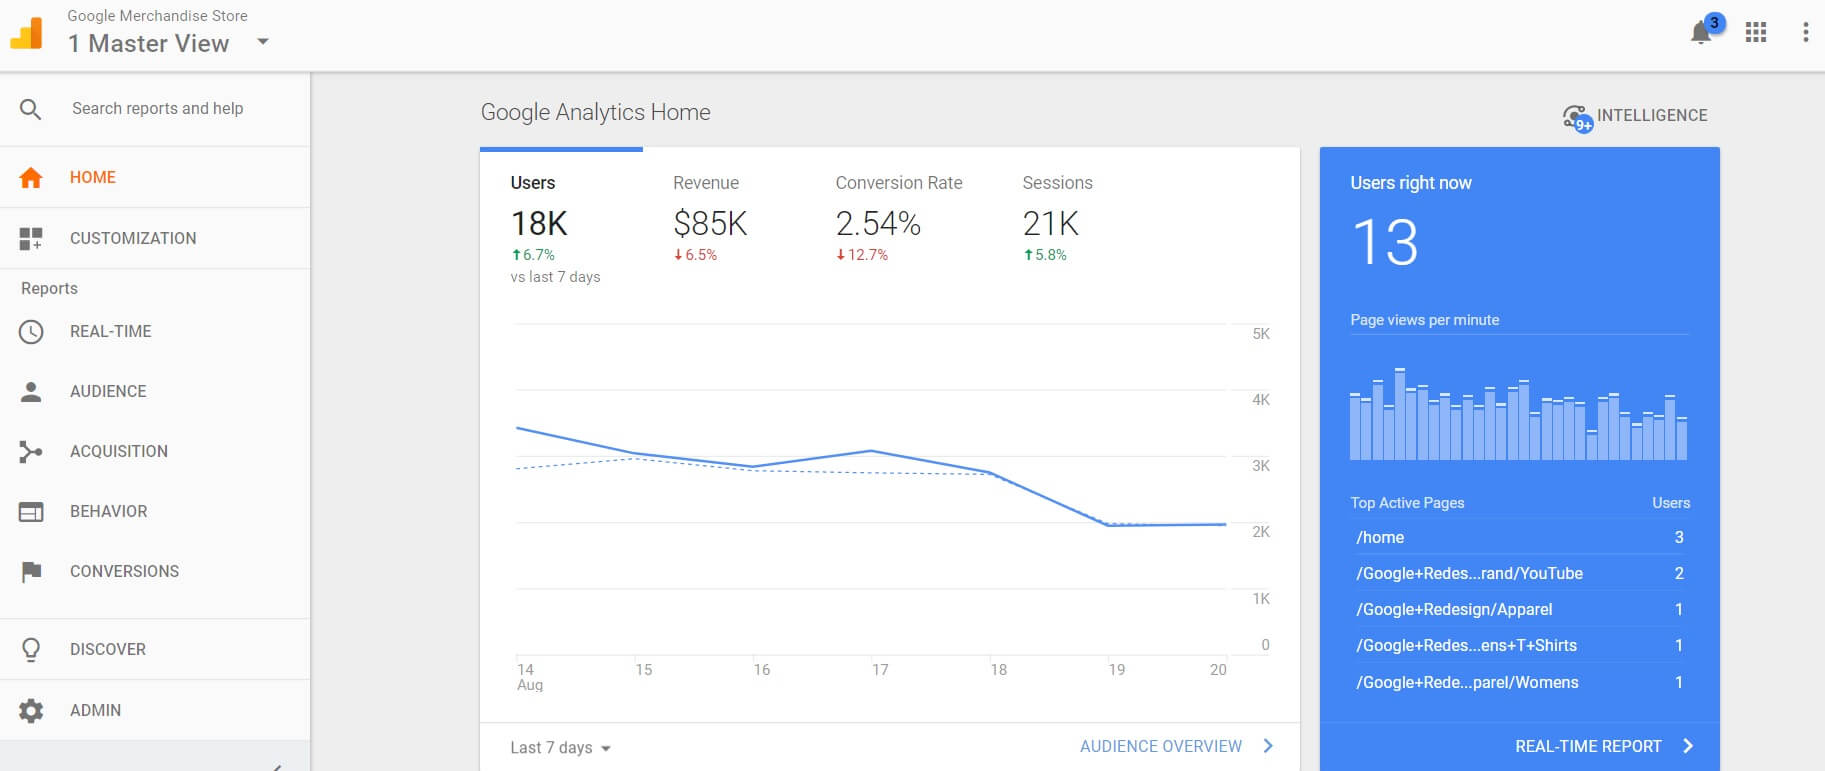 The Google Analytics home page snapshot